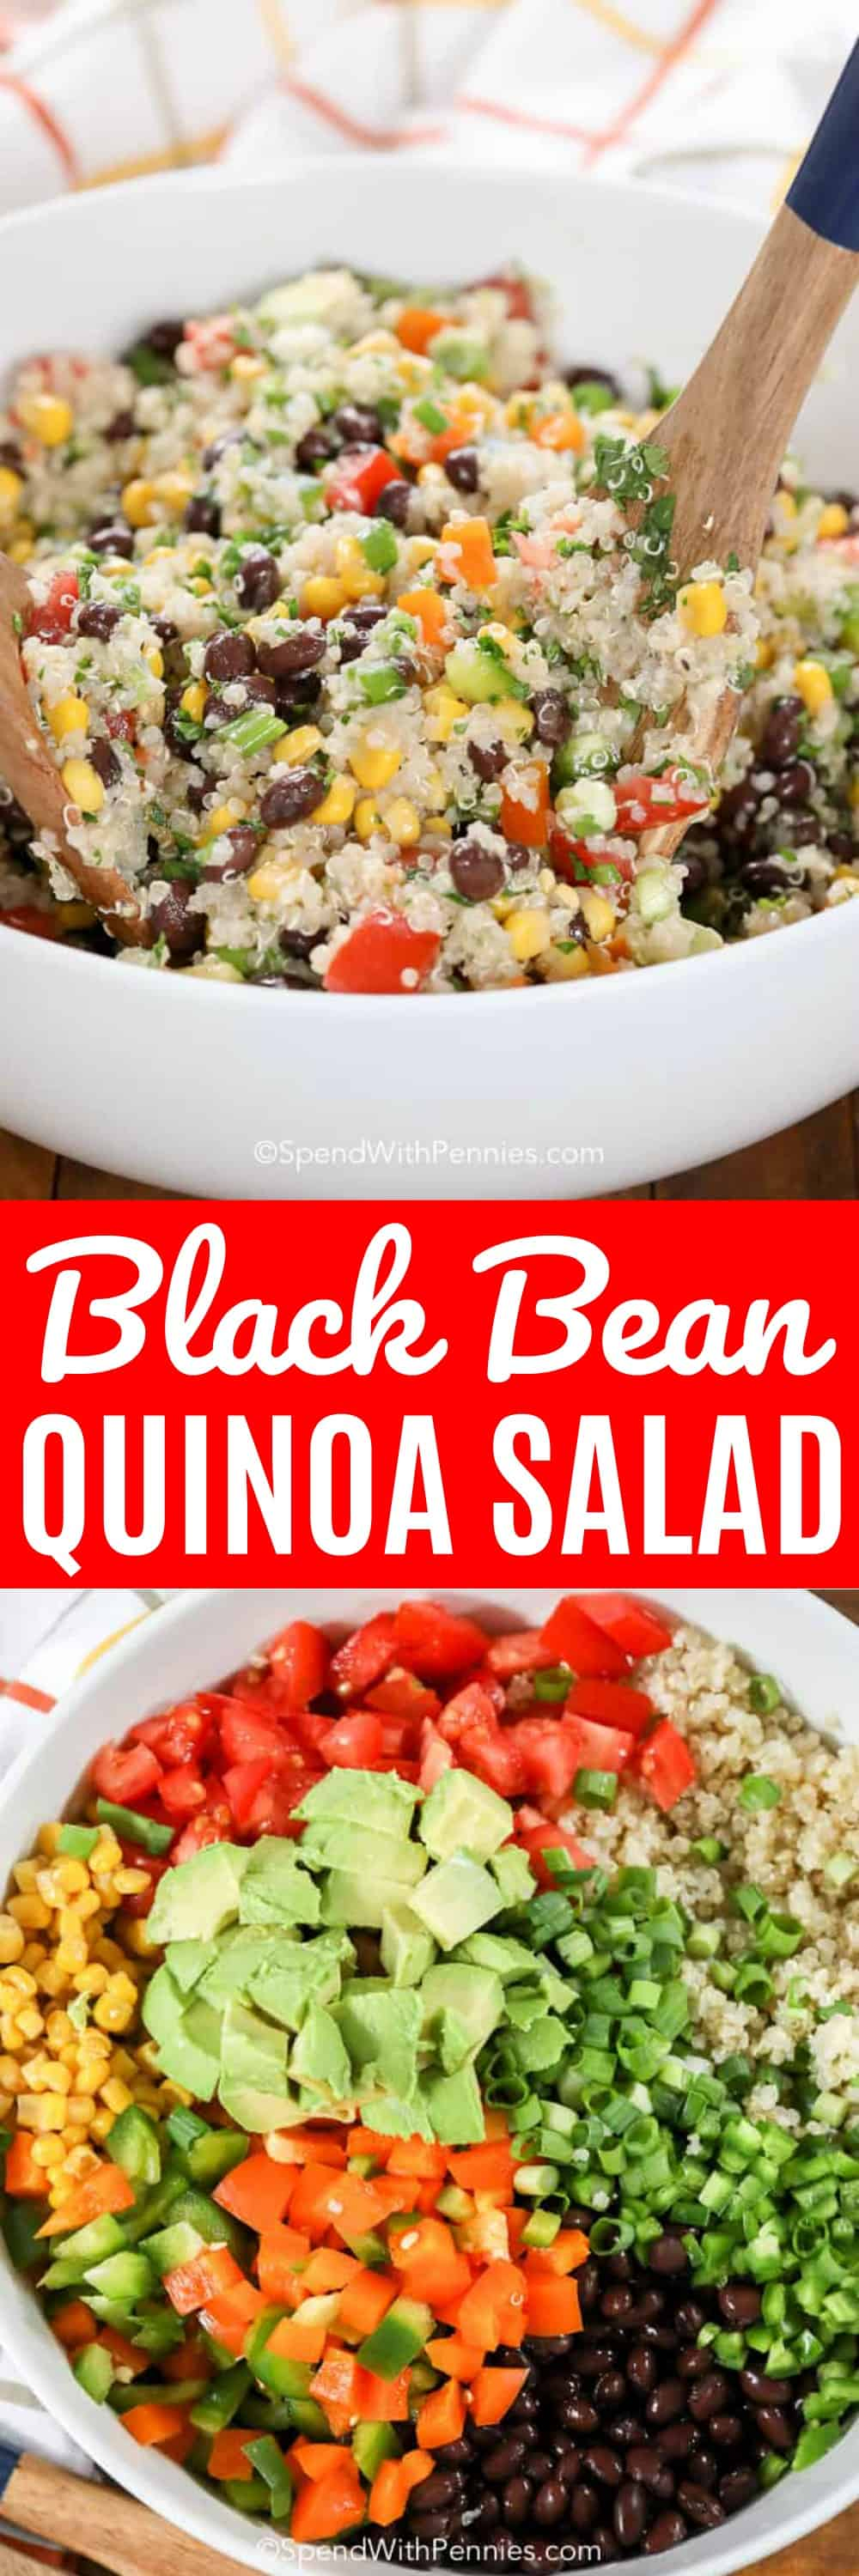 Black Bean Quinoa Salad with writing